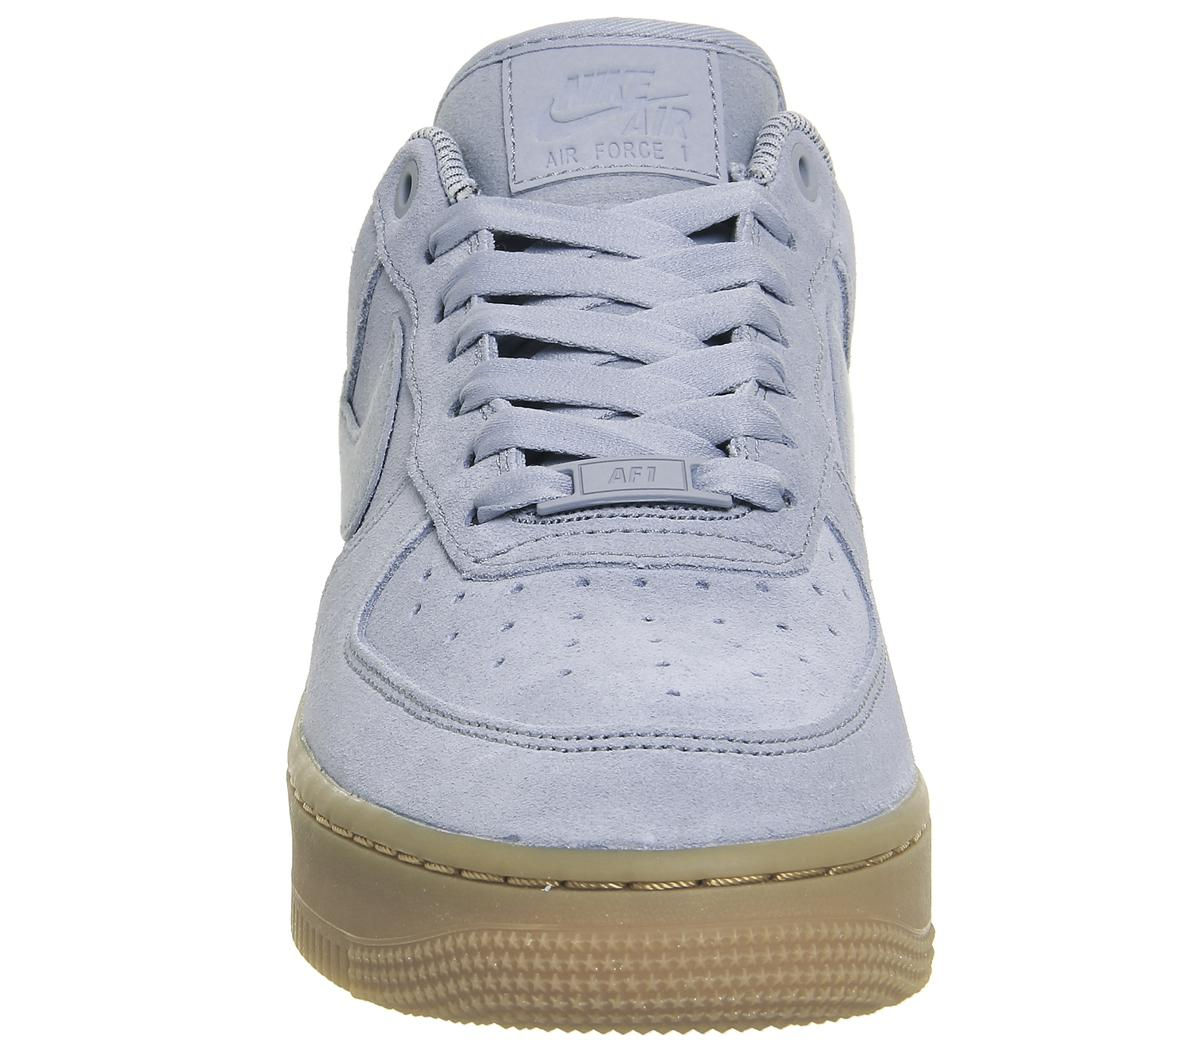 344cad682dd7c Gallery. Previously sold at  Offspring · Women s Nike Air Force ...